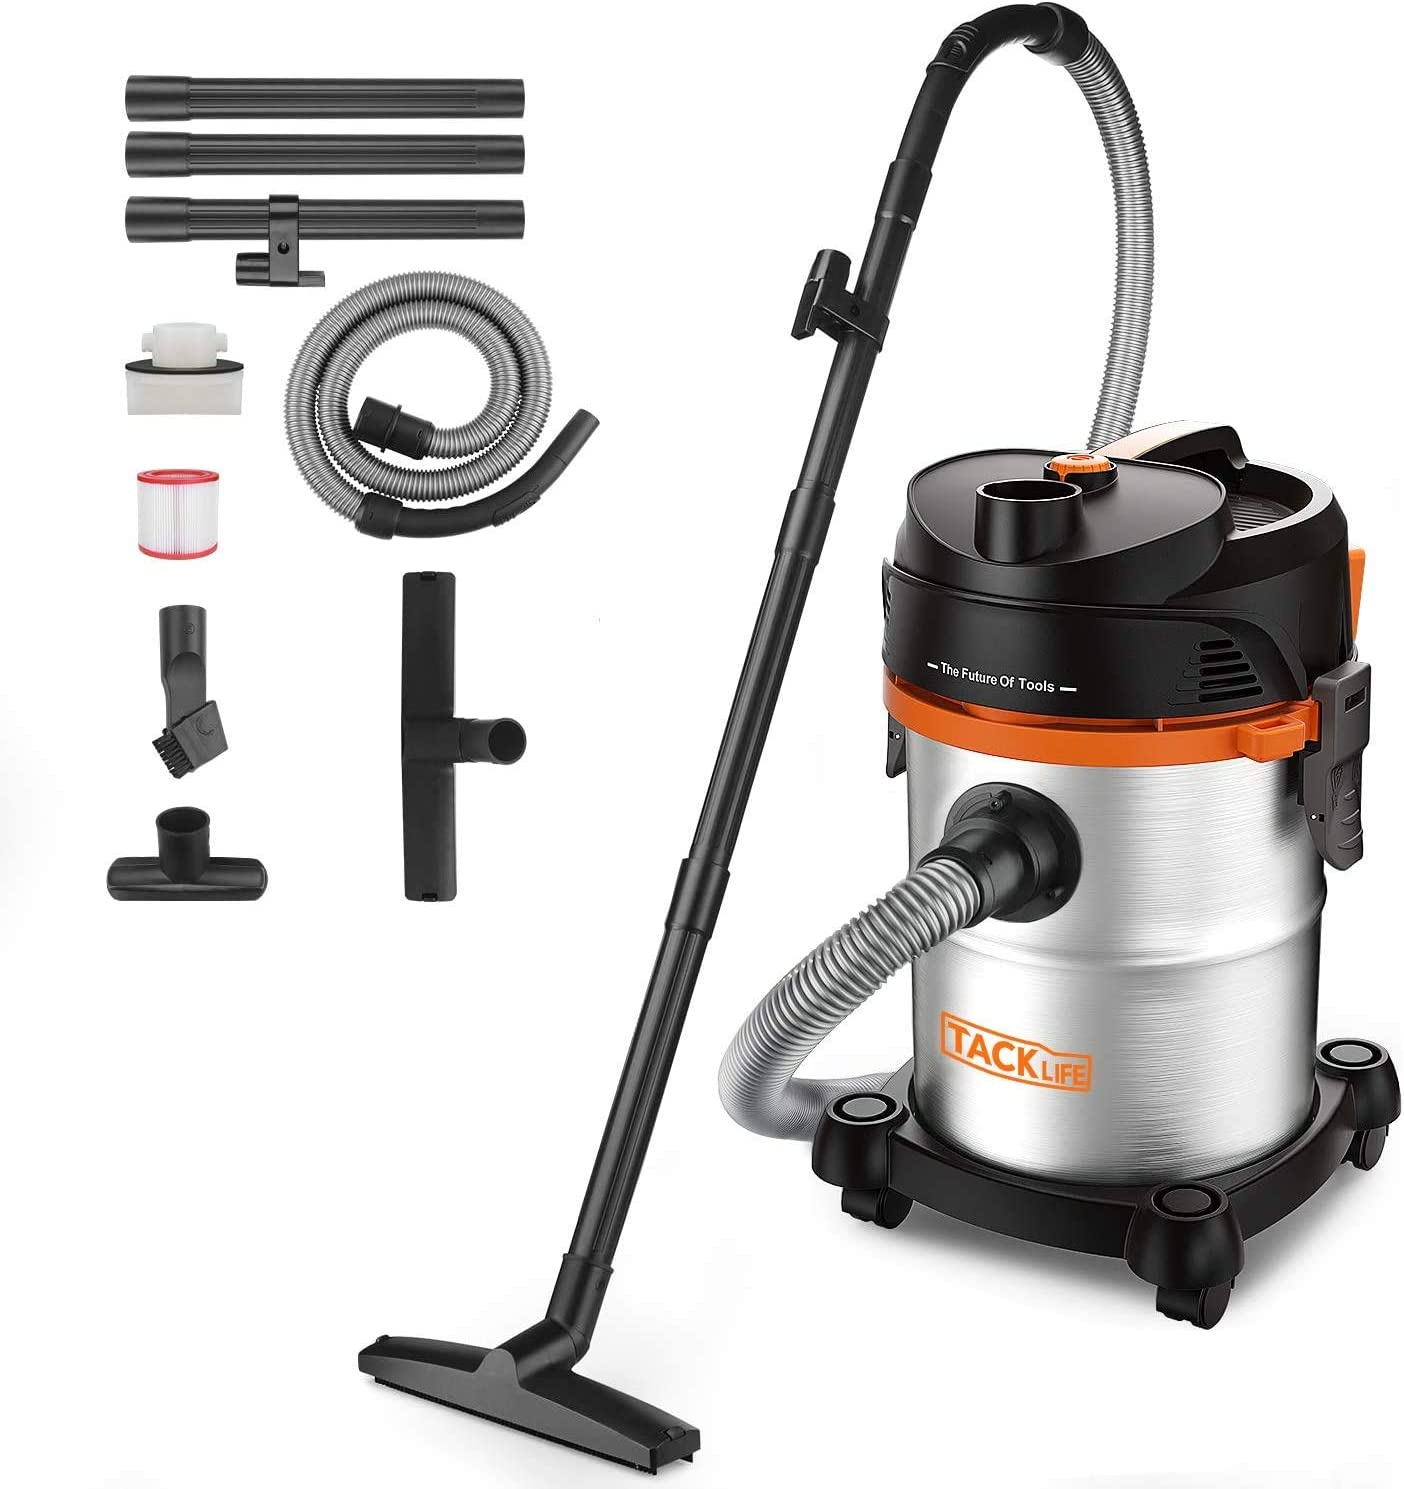 3 in 1 Shop Vac Sofa PVC05B 6 Peak HP Garden Tacklife Stainless Wet Dry Vacuum 6 Gal Hard Floor Suitable for Garage Powerful Suction